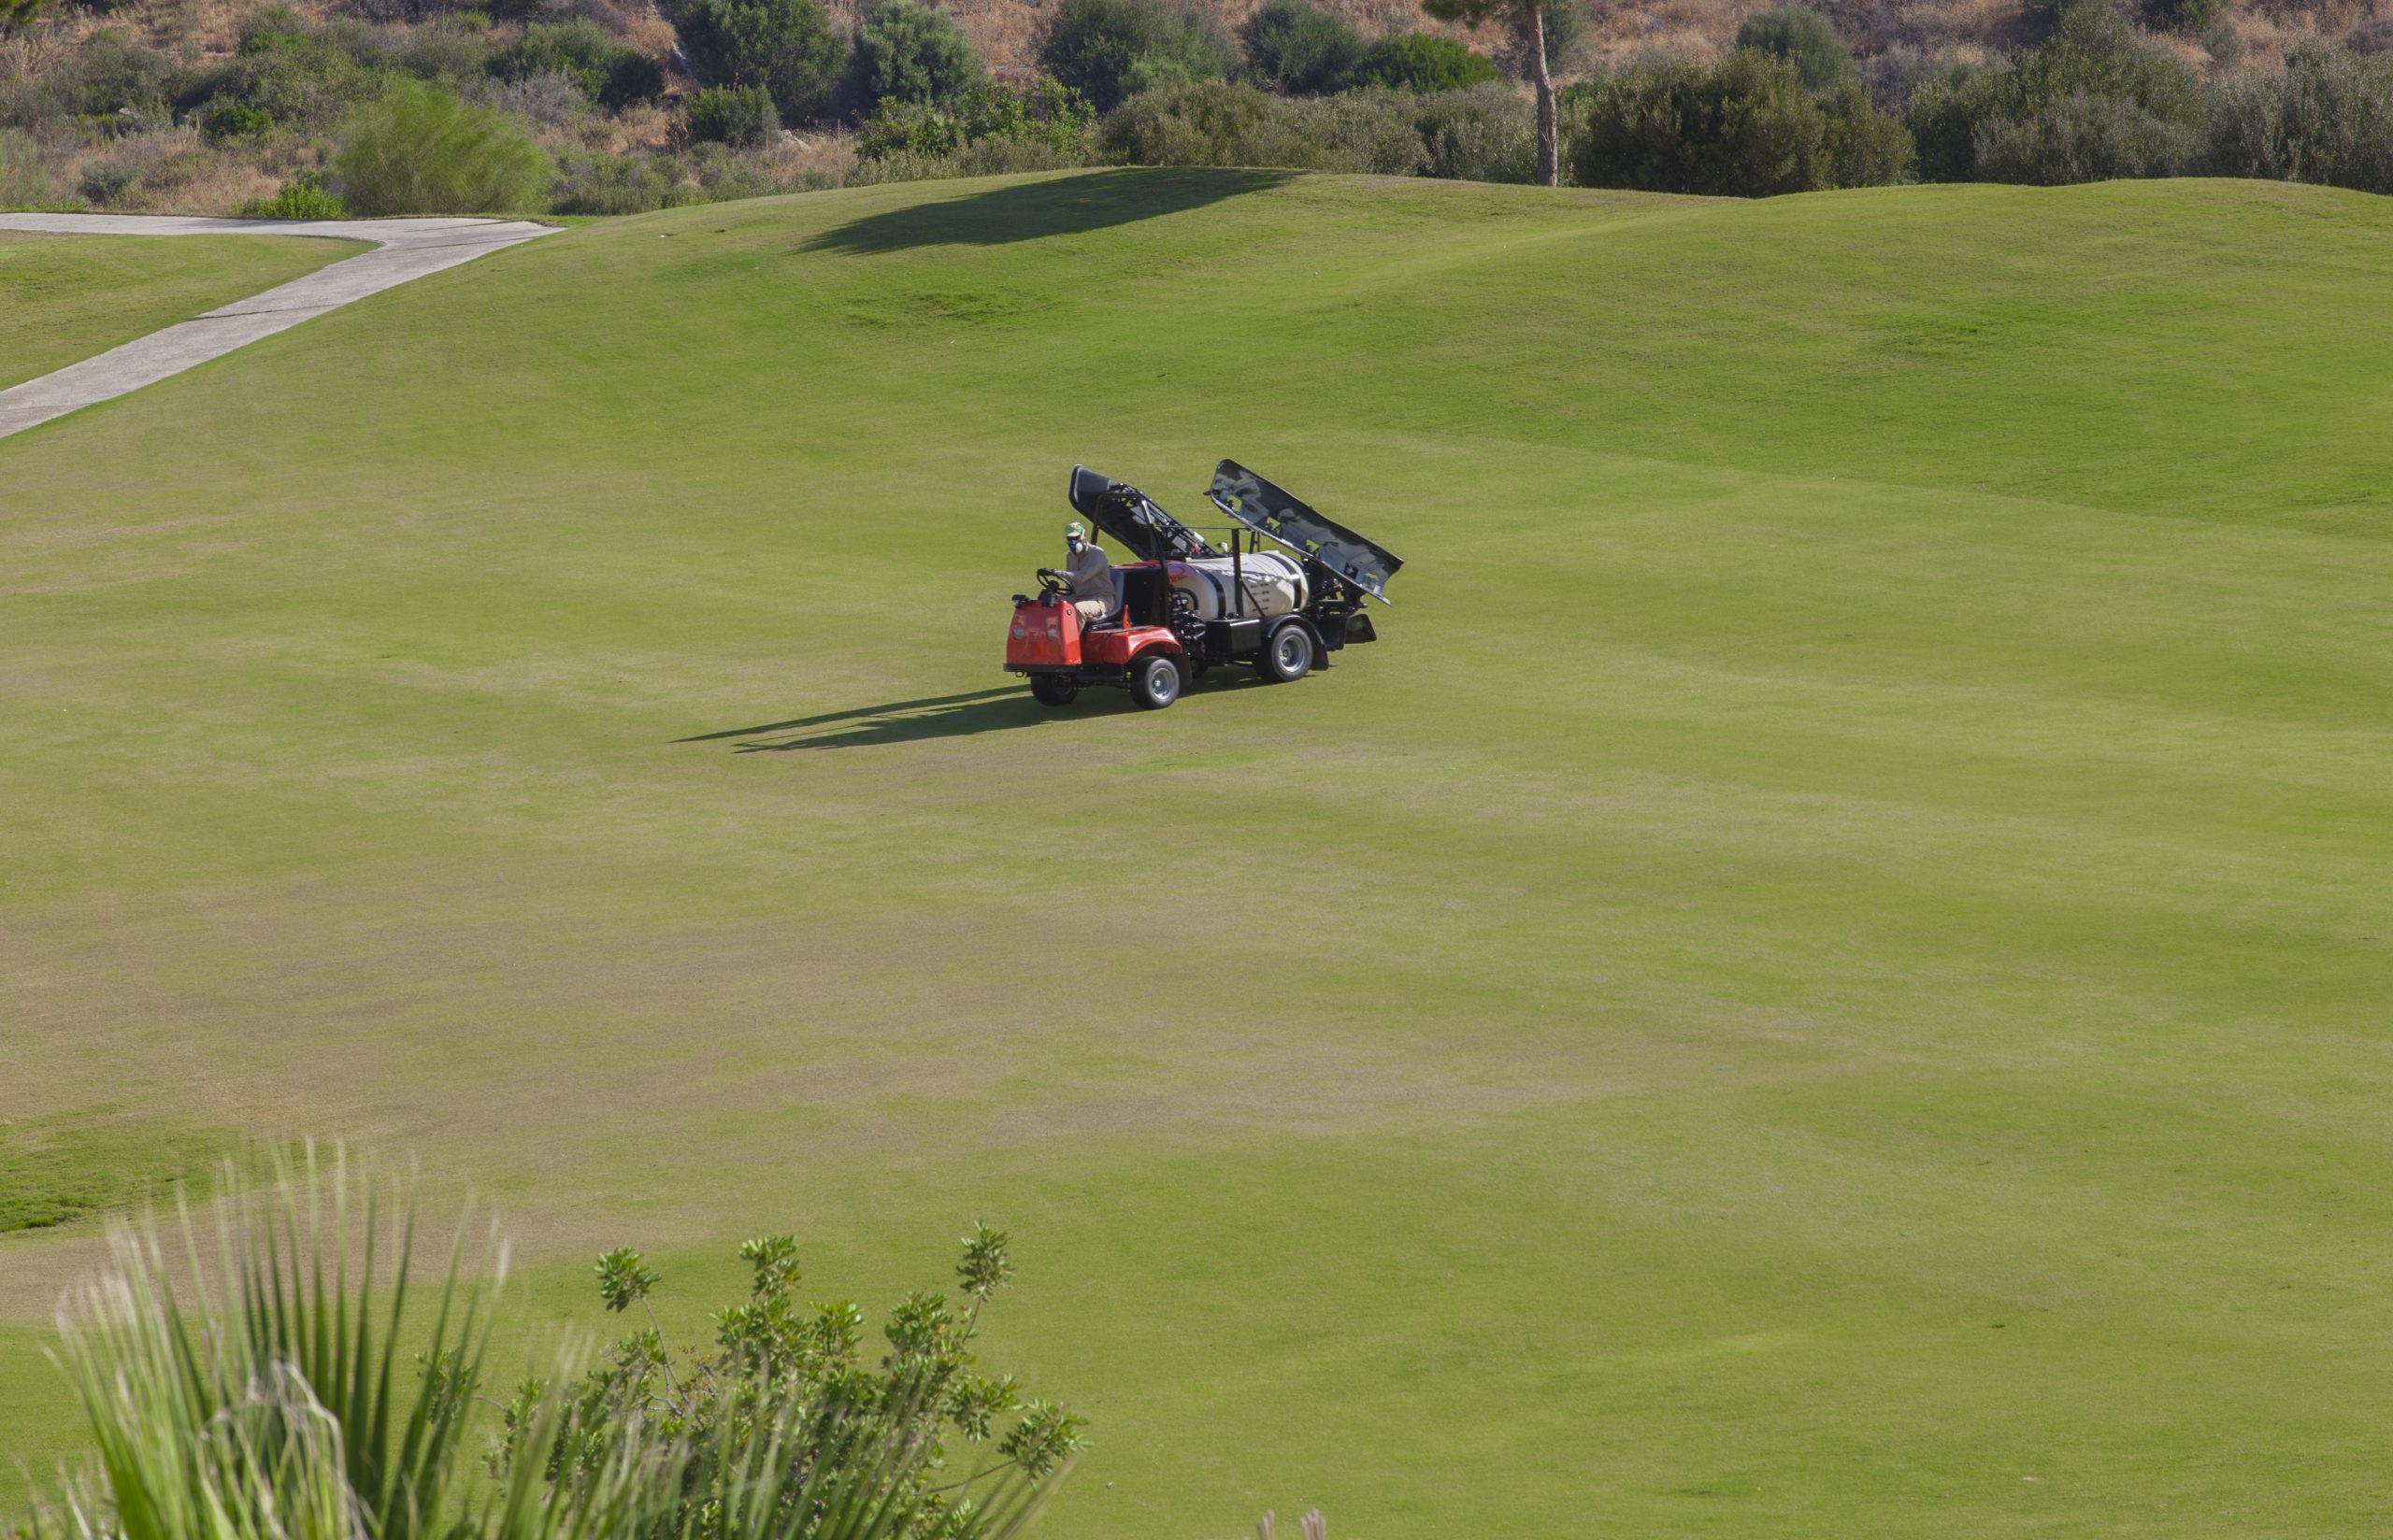 Used Golf Course Equipment & Used Turf Equipment